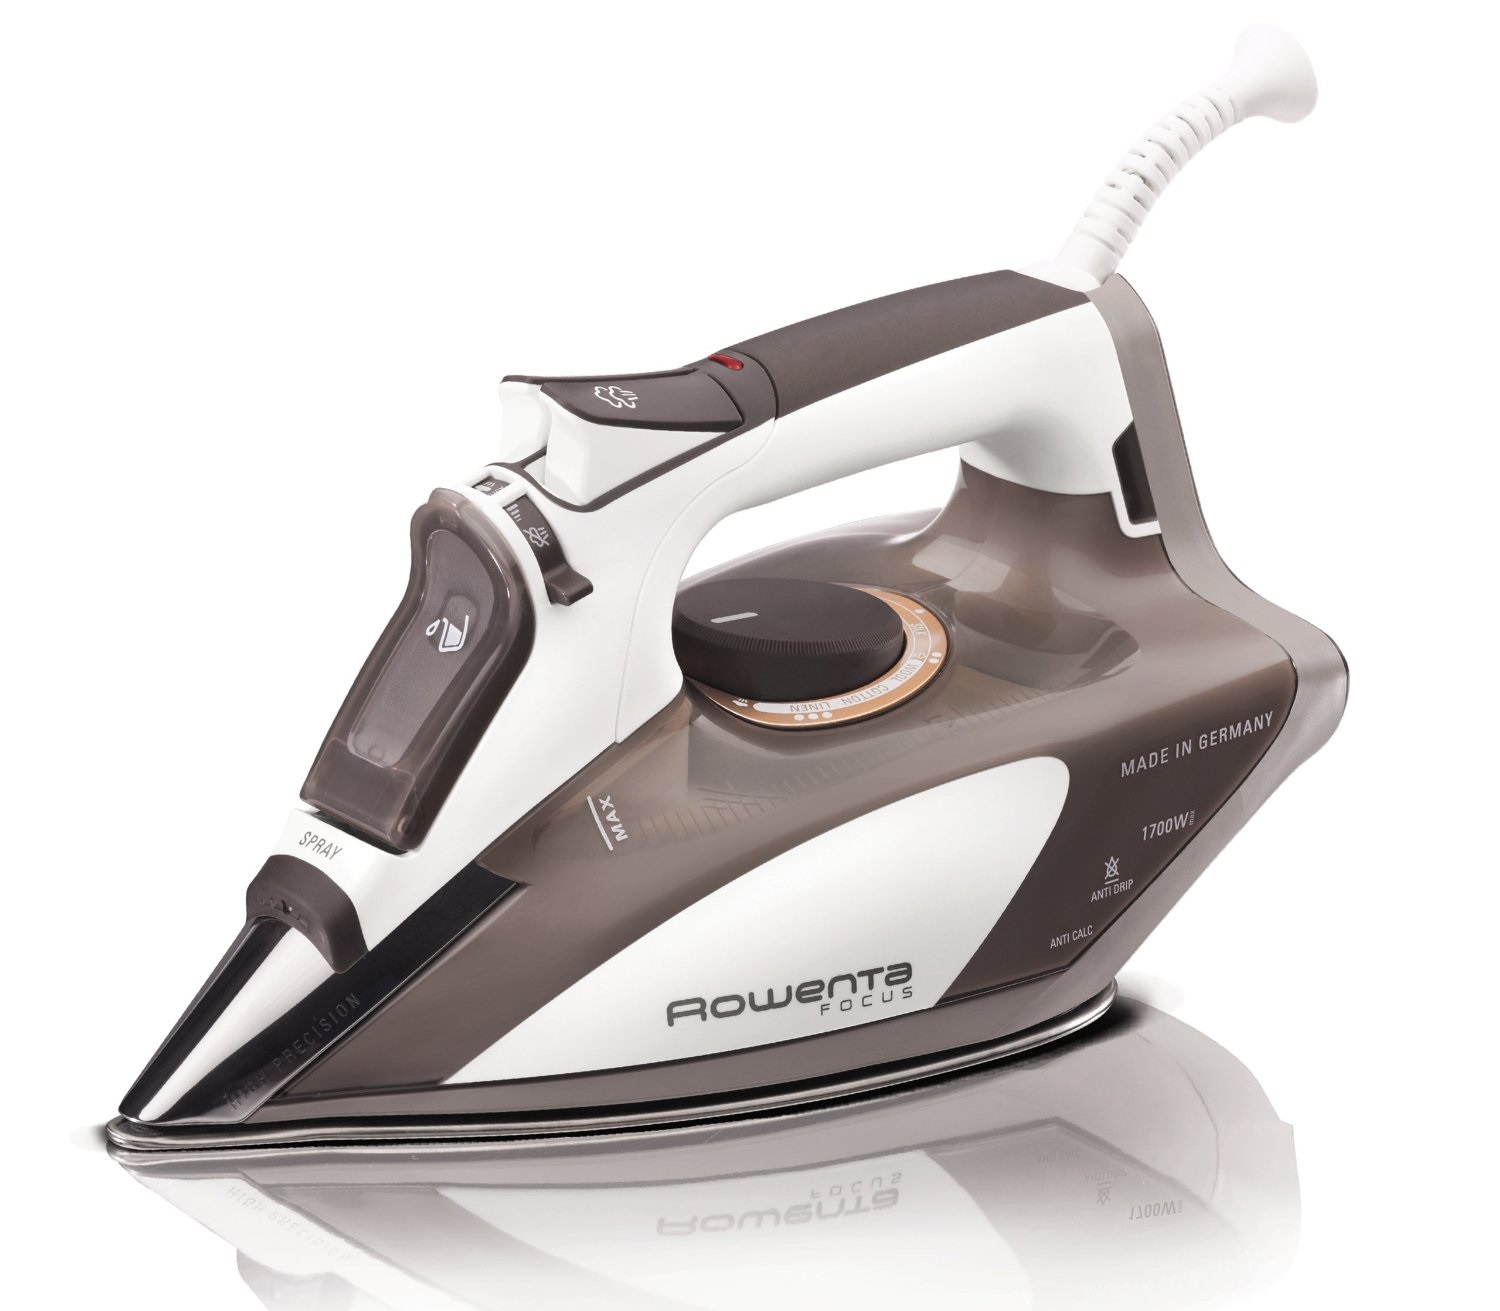 Rowenta DW5080 Focus Steam Iron Review : A Good Buy?